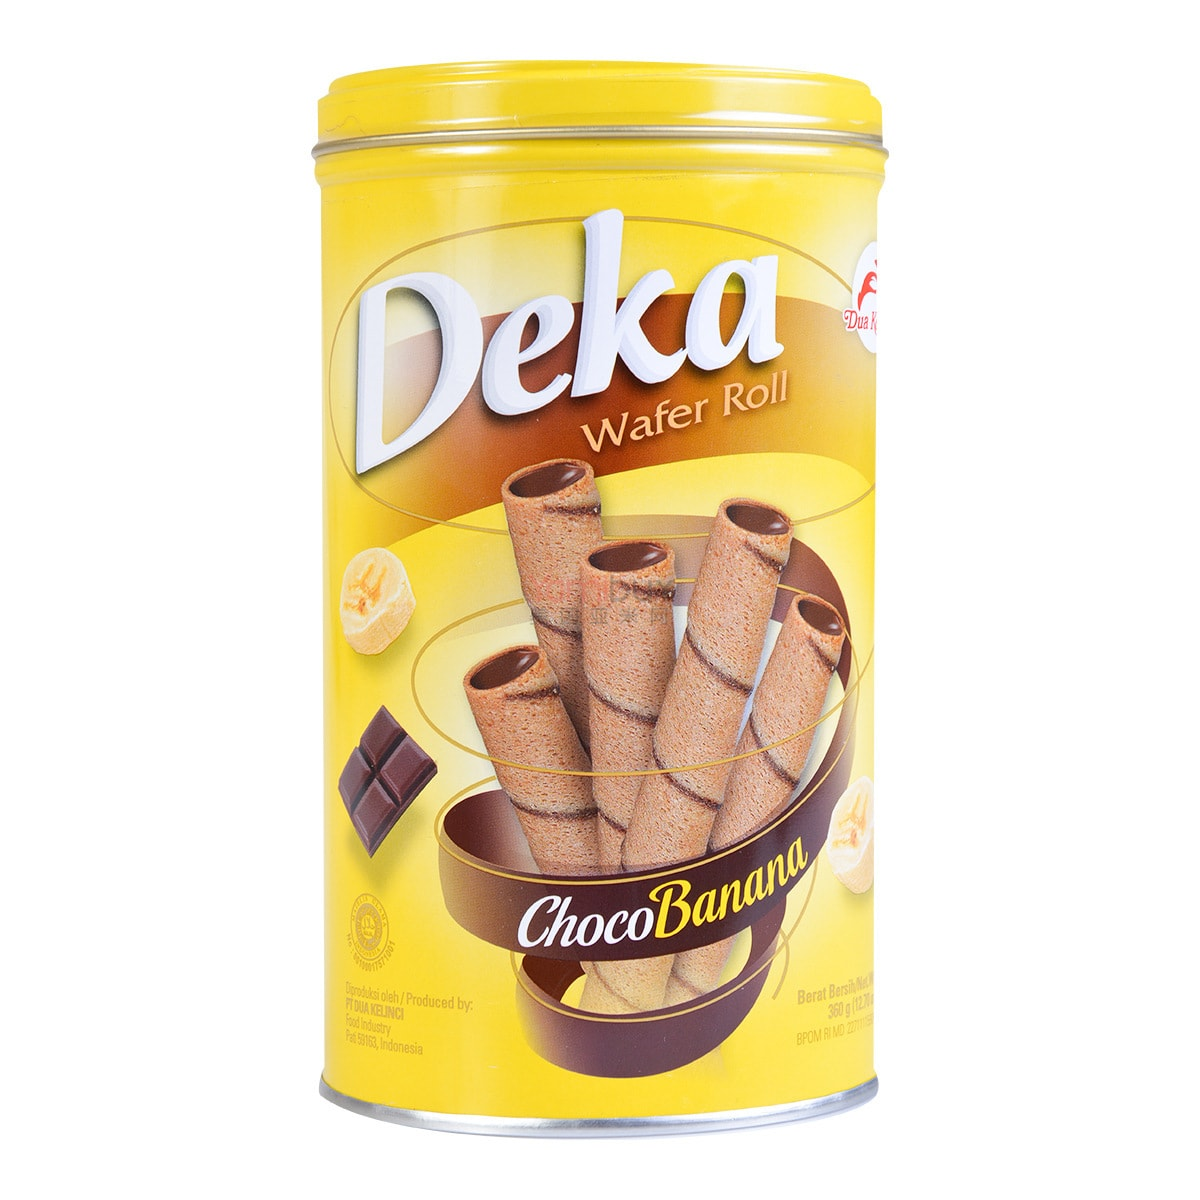 DUA KELINCI Deka Choco Banana Wafer Roll 360g